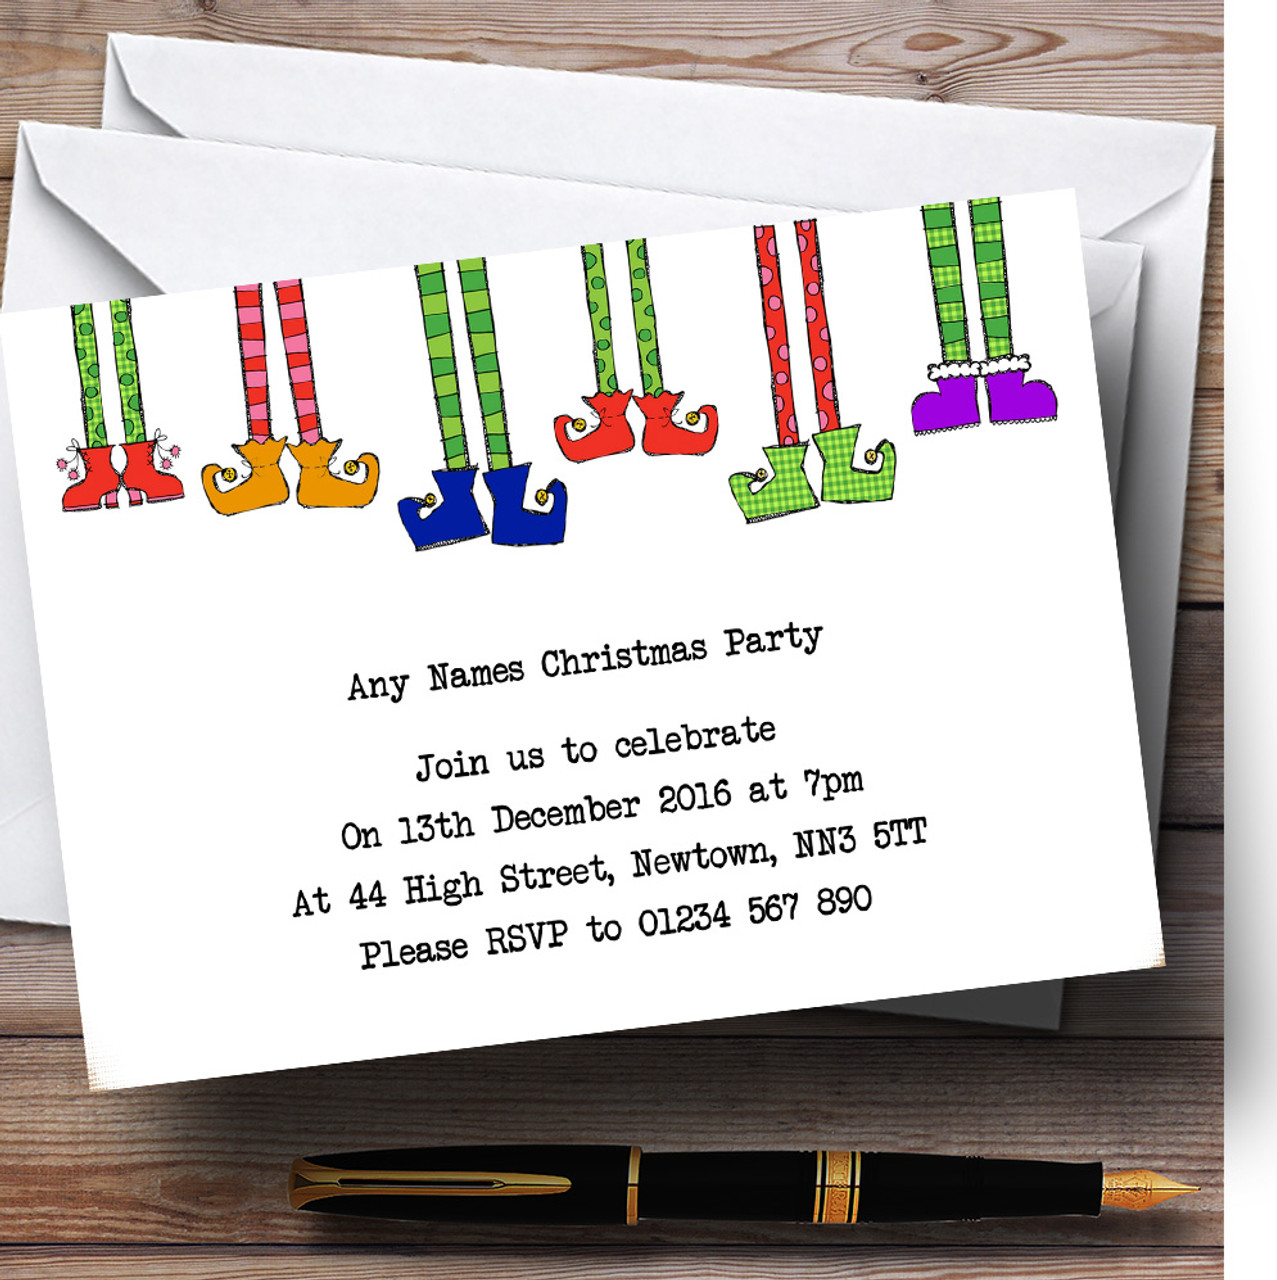 Funny Christmas Party Names.Funny Elf Legs Personalised Christmas Party Invitations